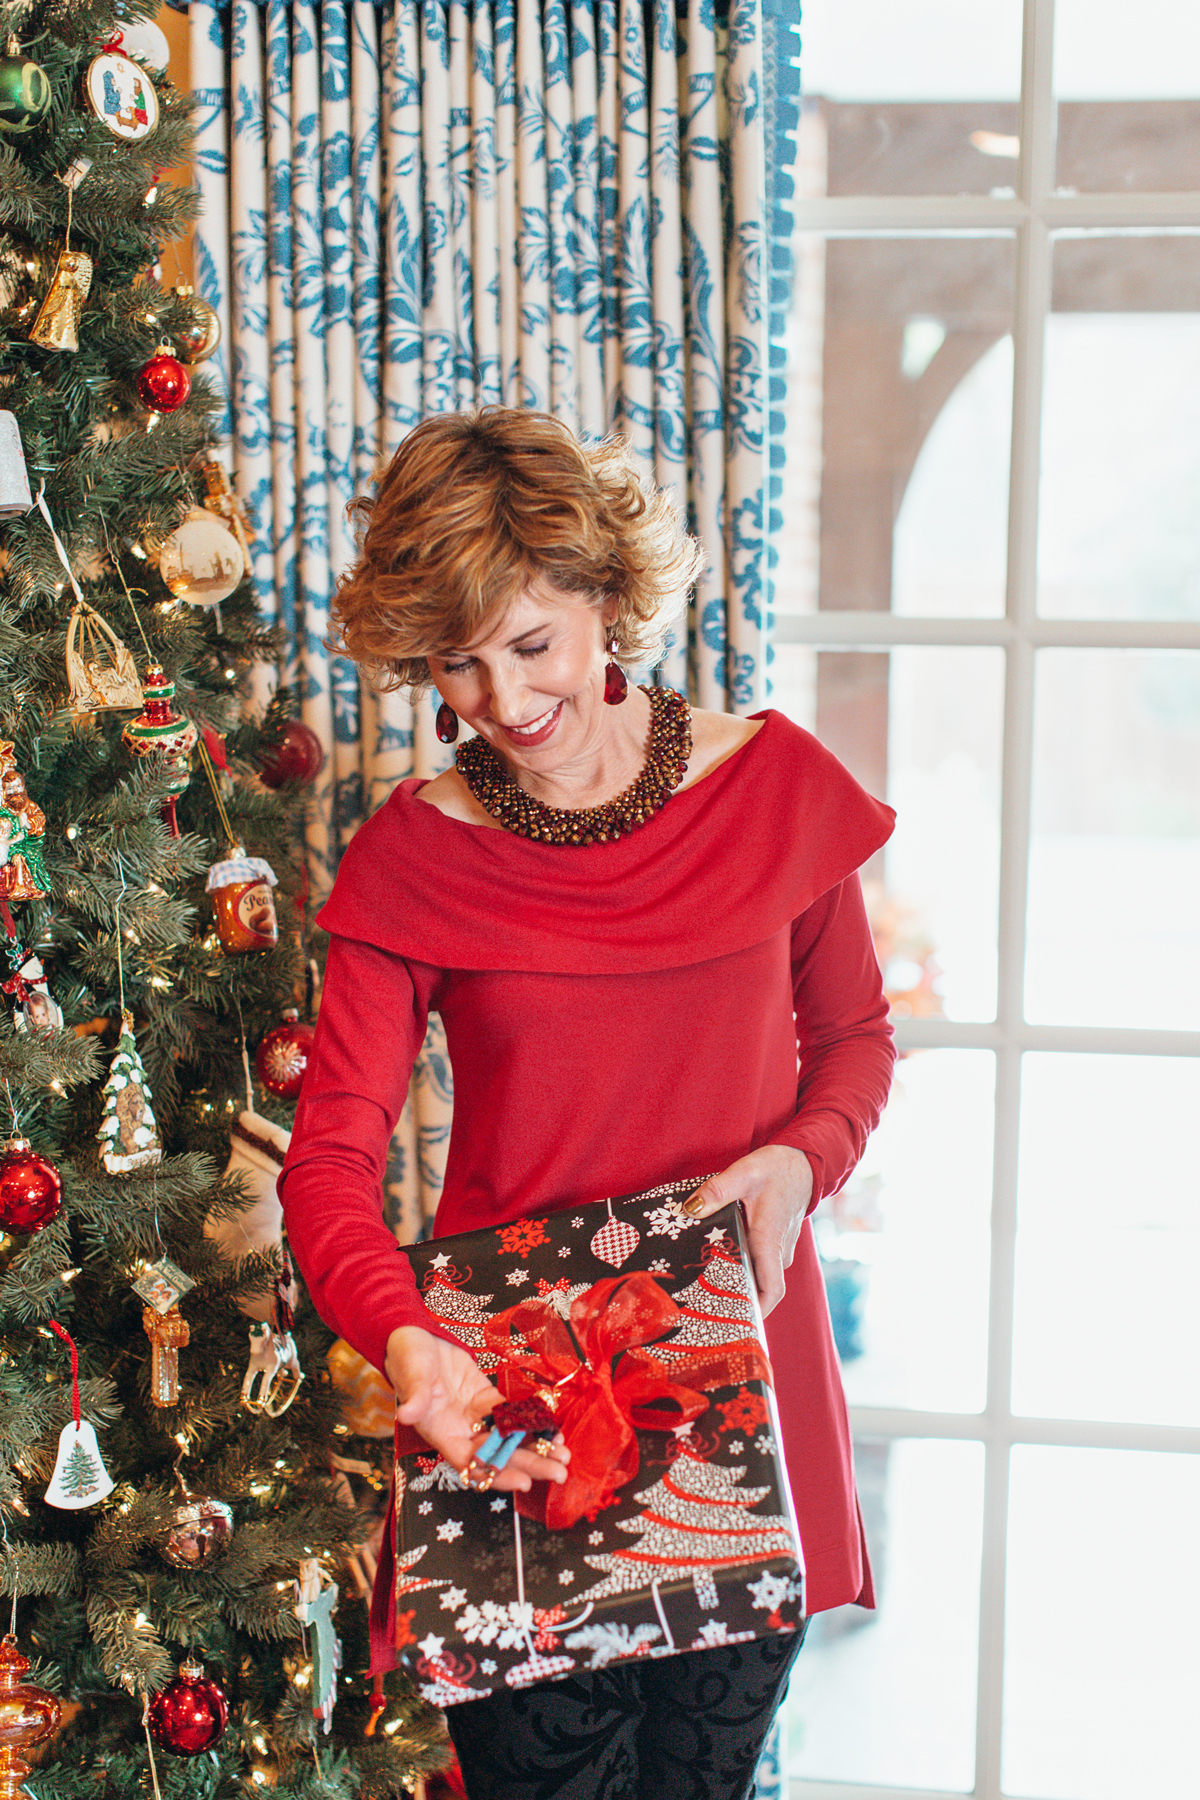 woman wearing red top holding a christmas gift and standing in front of a tree looking at one of her gift giving traditions of attaching an ornament to the exterior of a gift